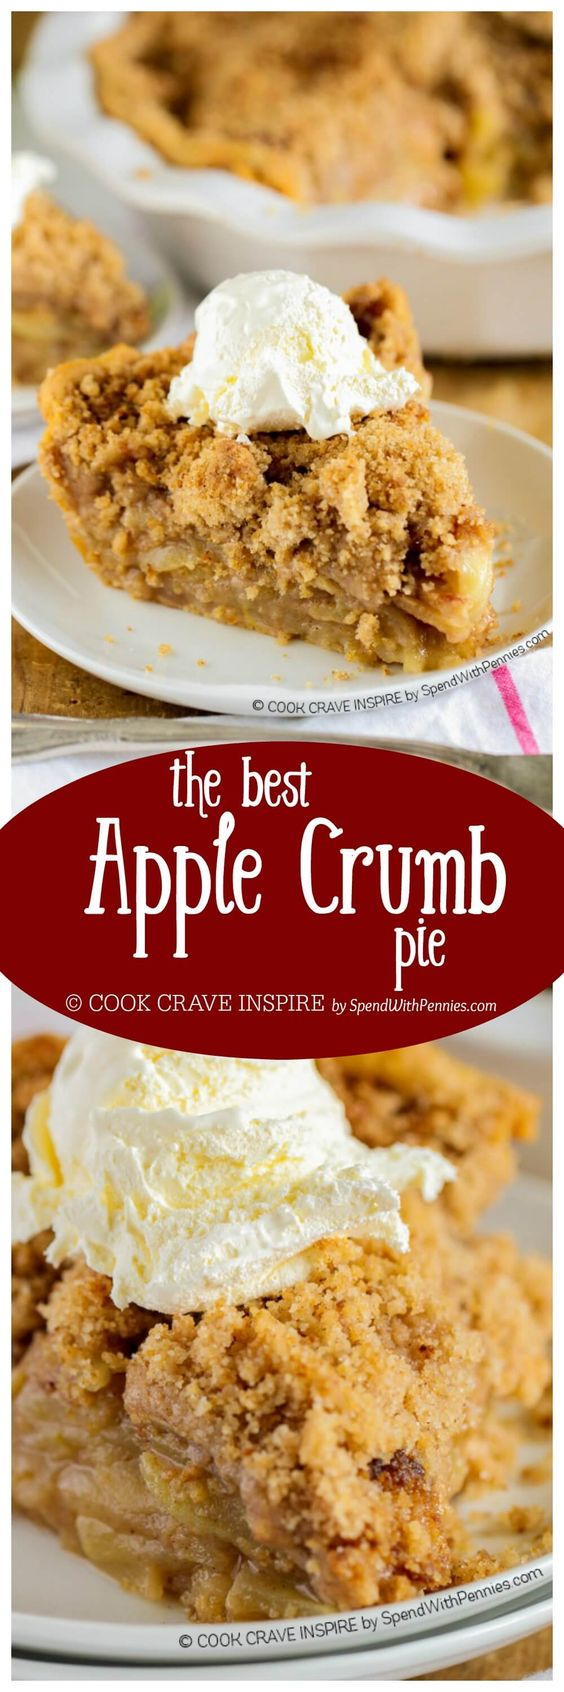 The BEST Apple Crumb Pie Dessert Recipe via Spend With Pennies - This is truly the best apple pie recipe you'll ever make! Loaded with fresh tart apples and topped with a sweet brown sugar crumble, this is one recipe that will be requested over and over! Favorite EASY Pies Recipes - Brunch Dessert No-Bake + Bake Musts